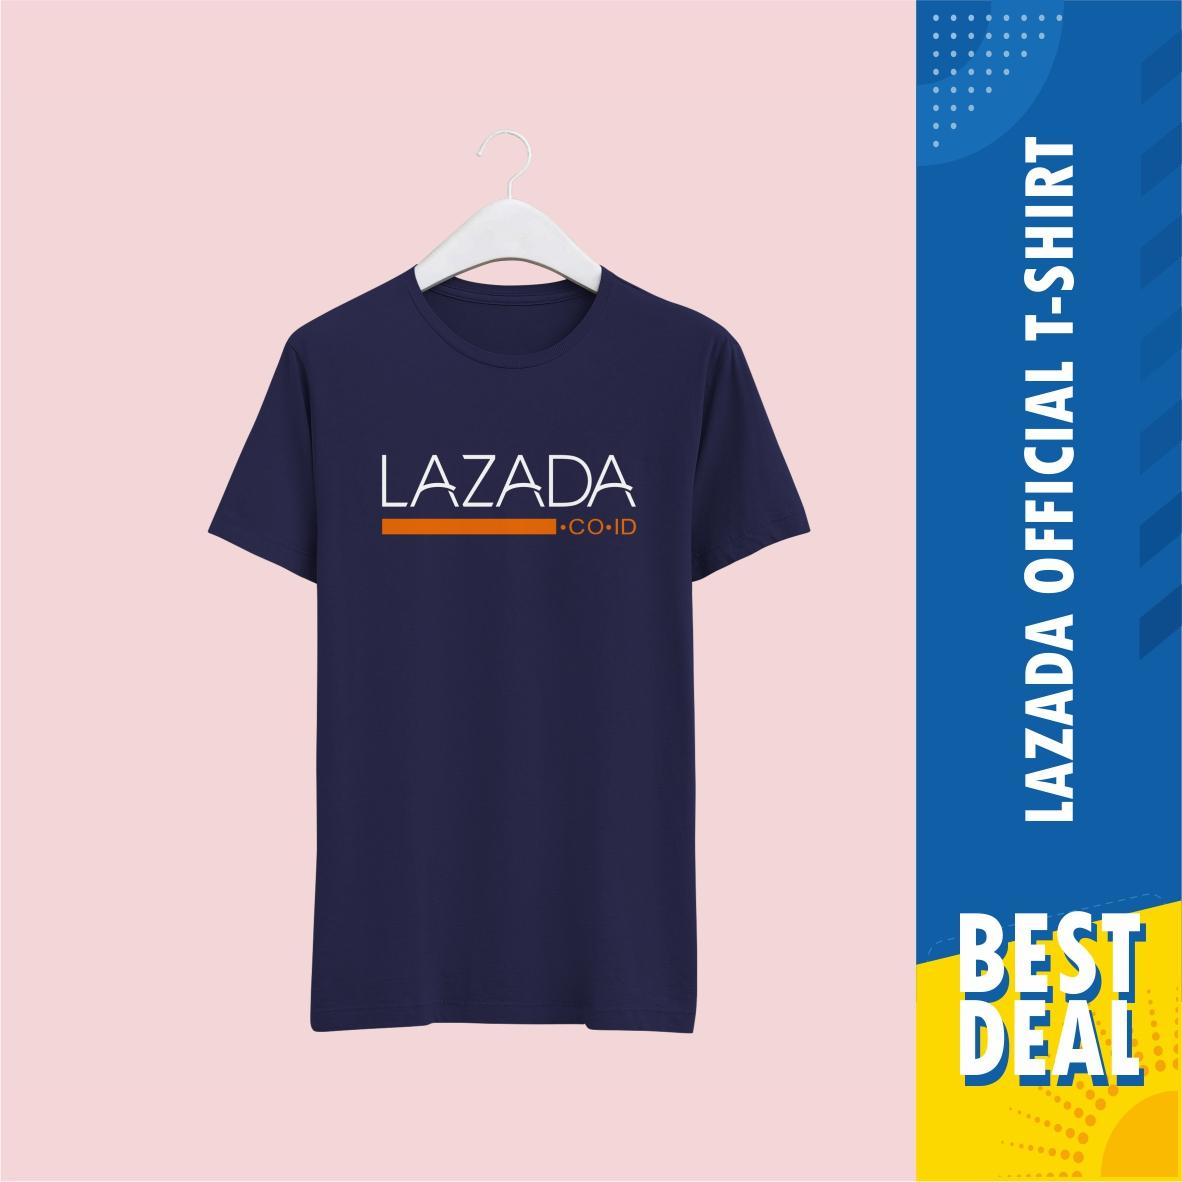 Kaos Official Lazada - Tshirt Limited Edition Premium Quality